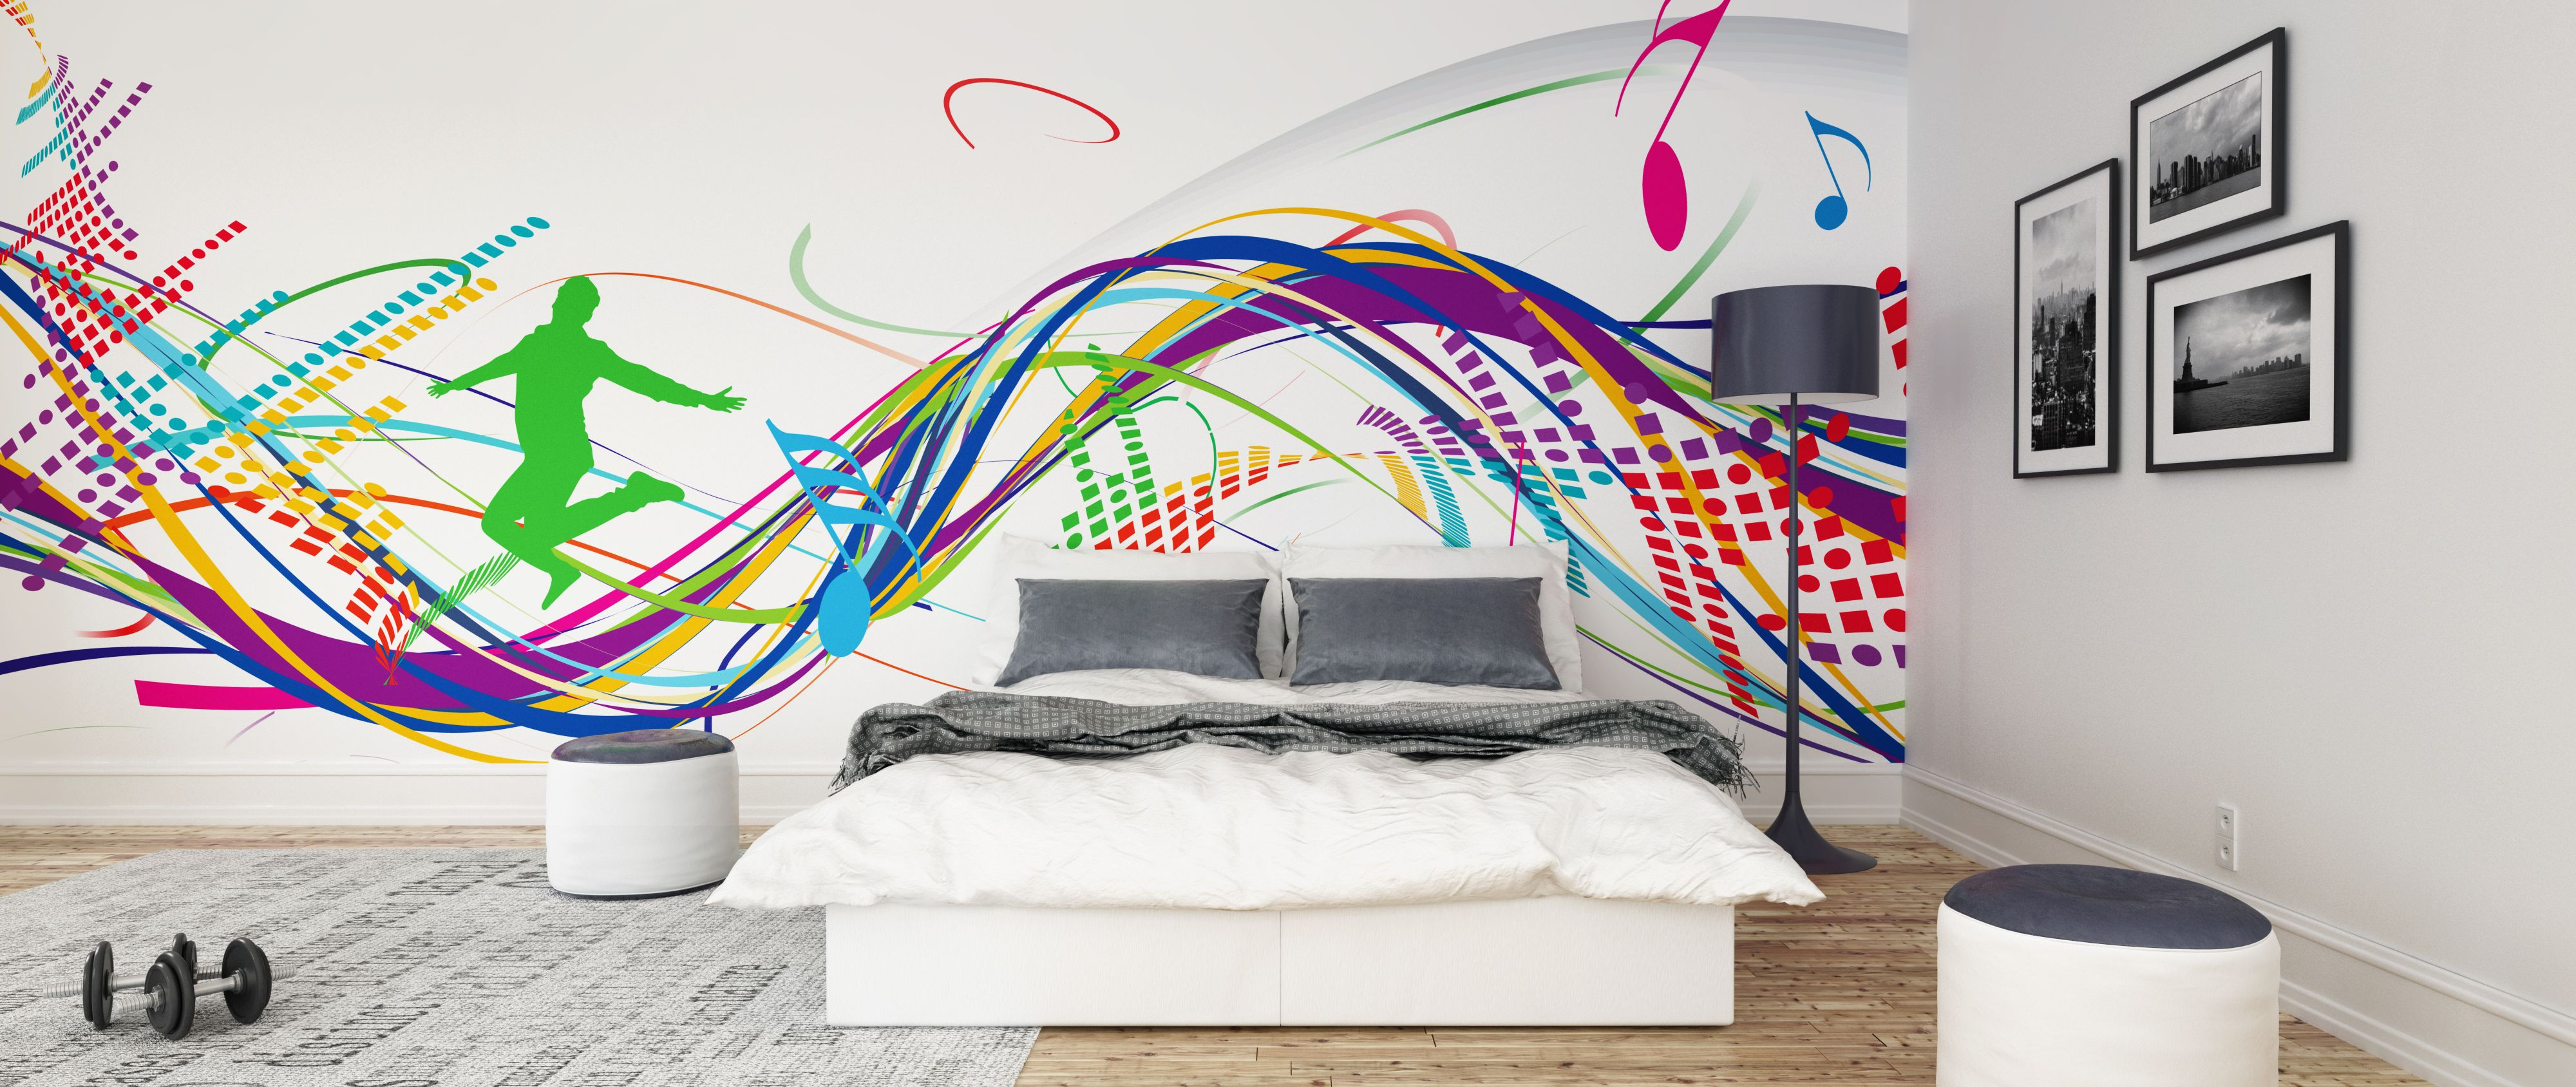 Colorful Musical Notes Wall Mural Photo Wallpaper GIANT DECOR Paper Poster